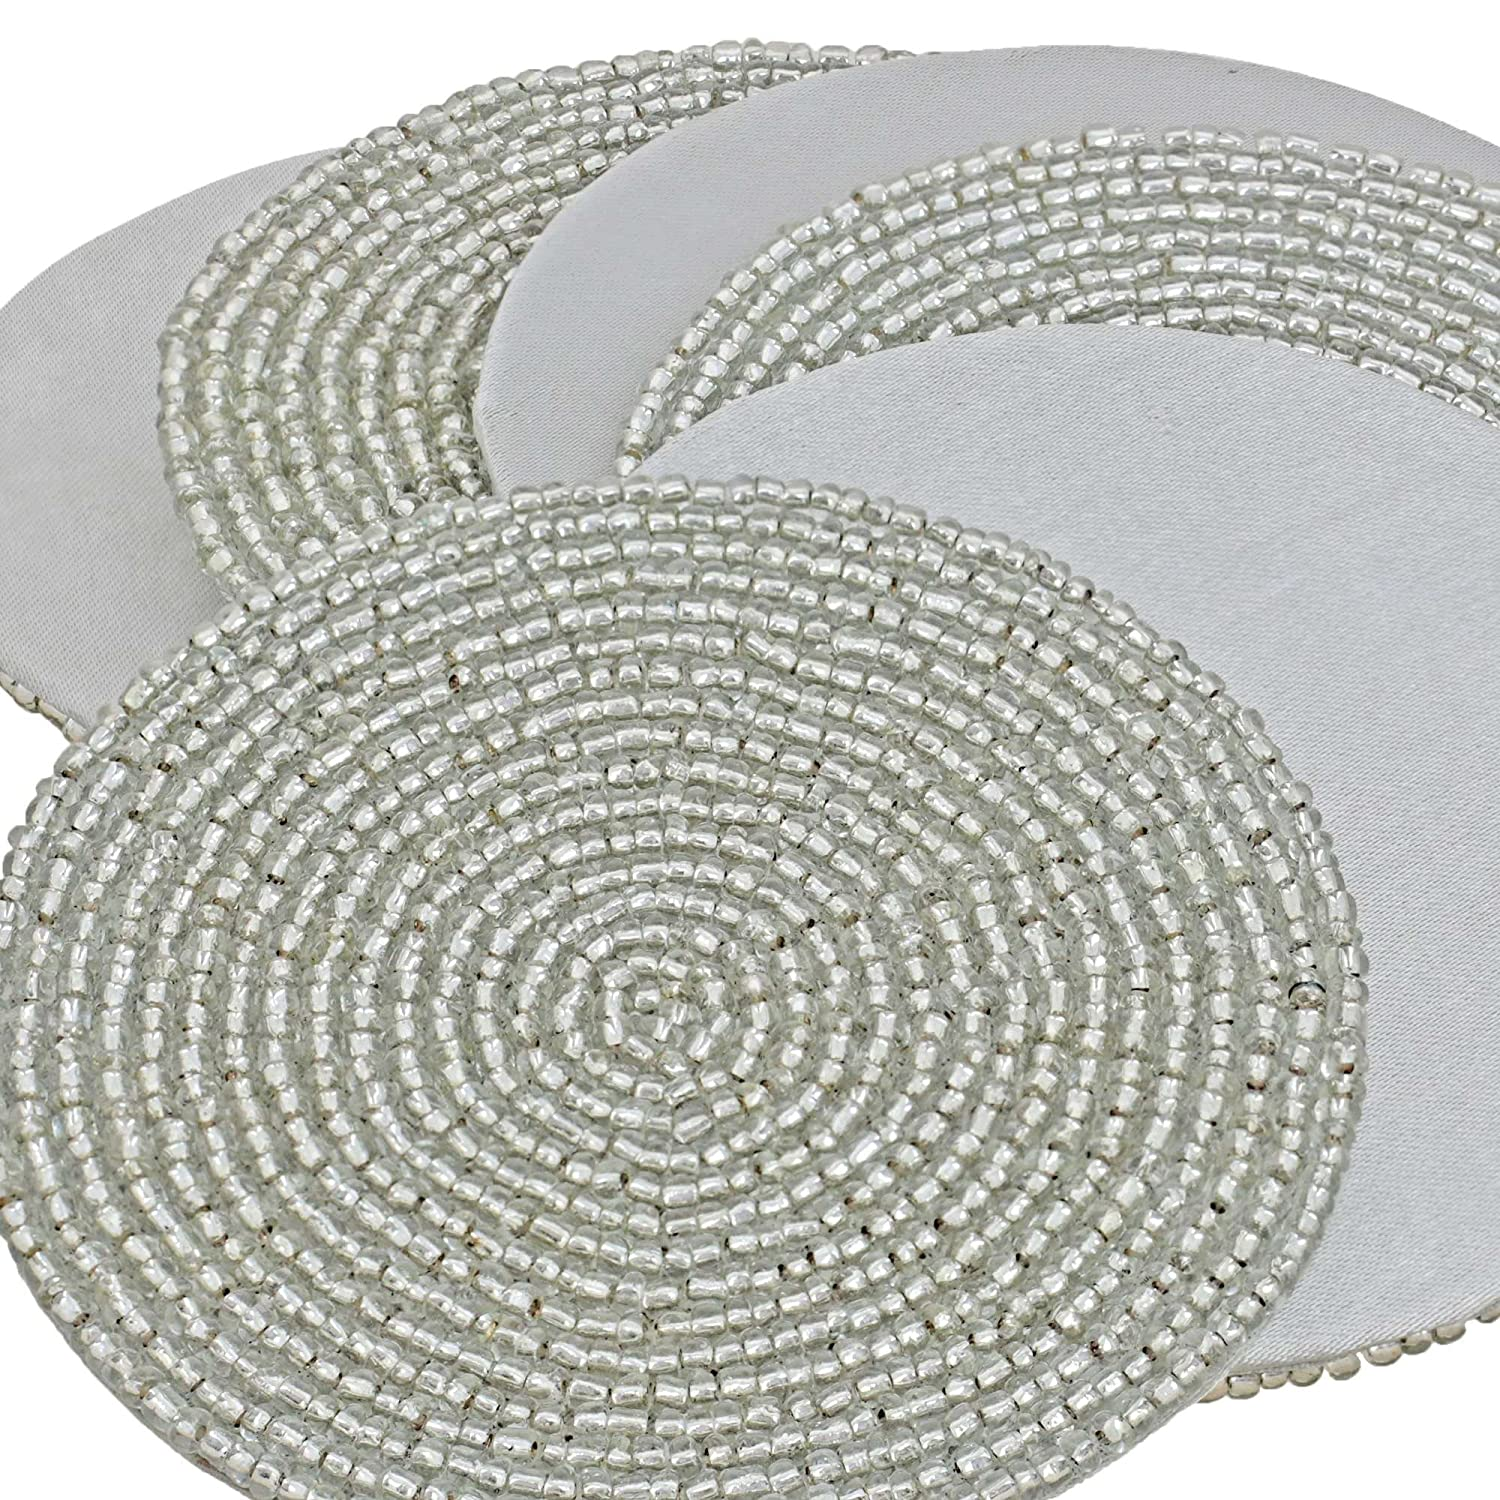 Silver Round Beaded Placemats Round Designs